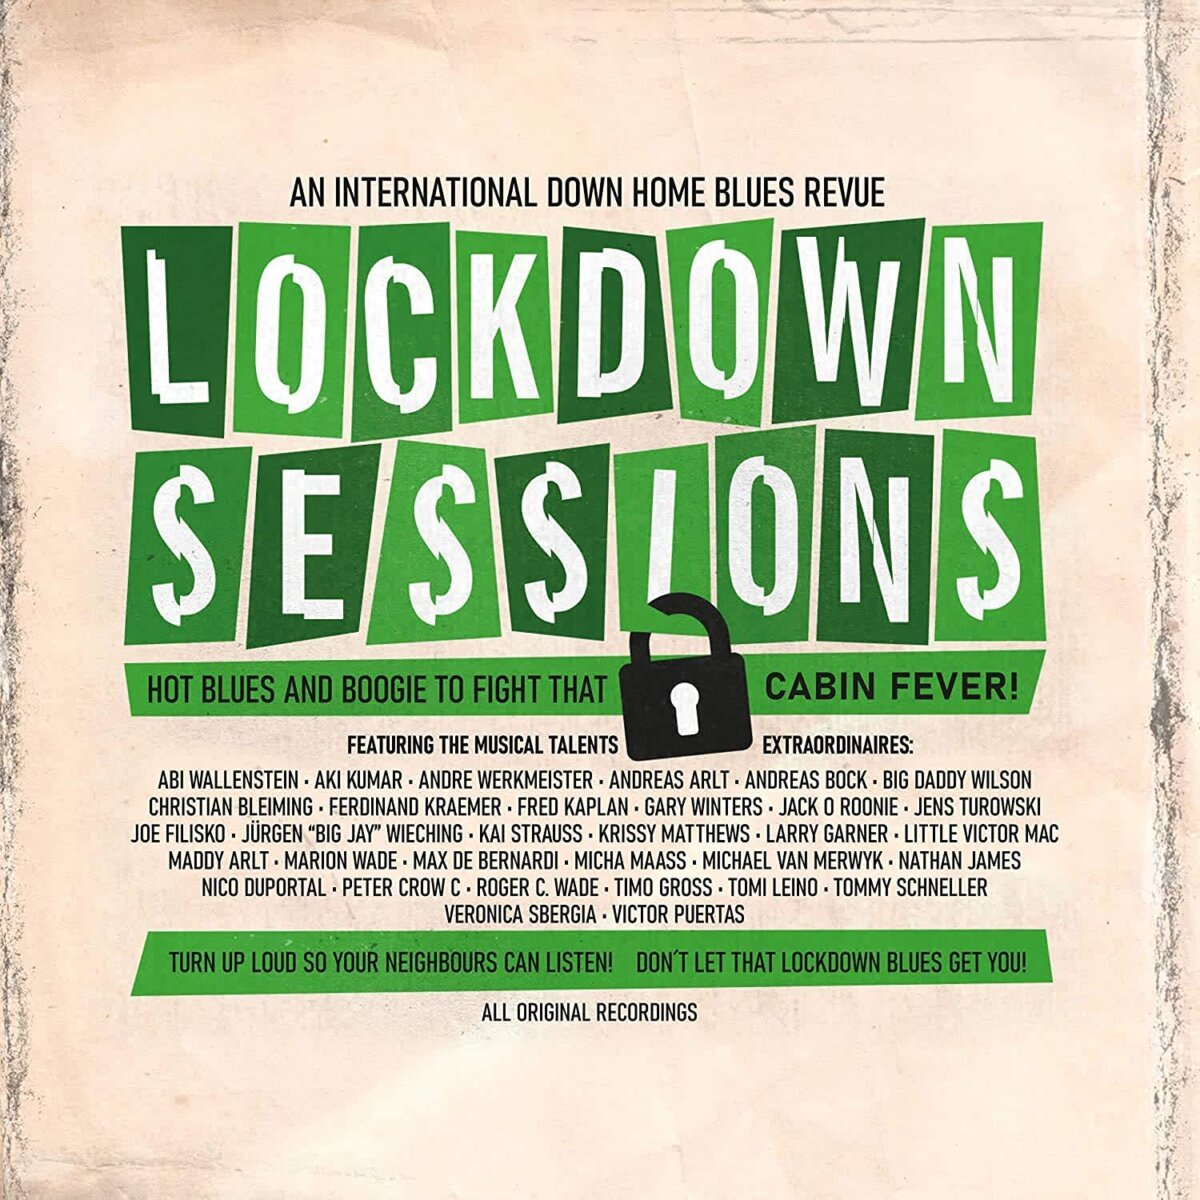 Lockdown Sessions: An International Down Home Blues Revue